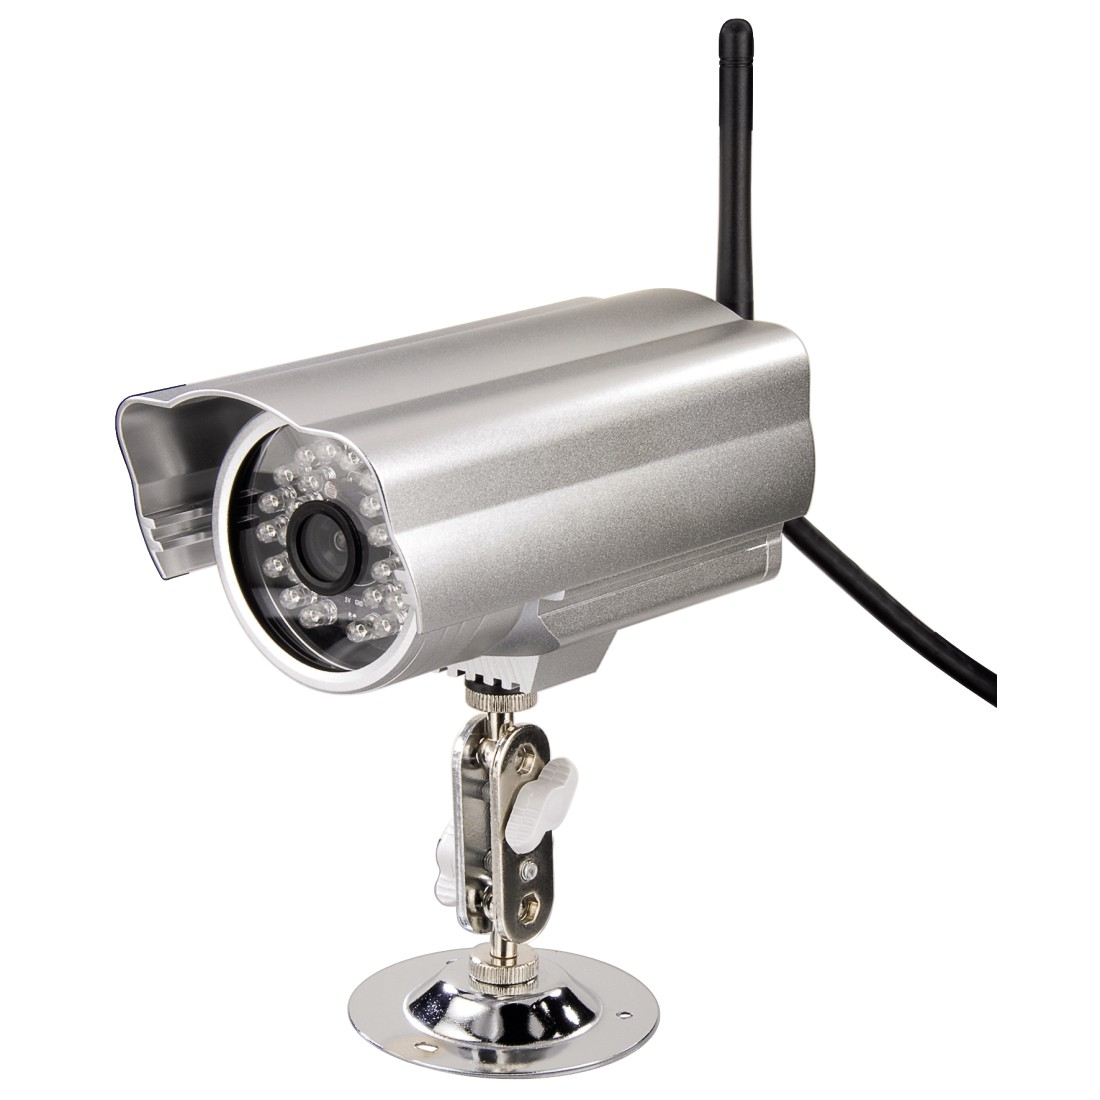 awx High-Res Appliance - Hama, Wireless LAN IP Camera Outdoor, 54 Mbps